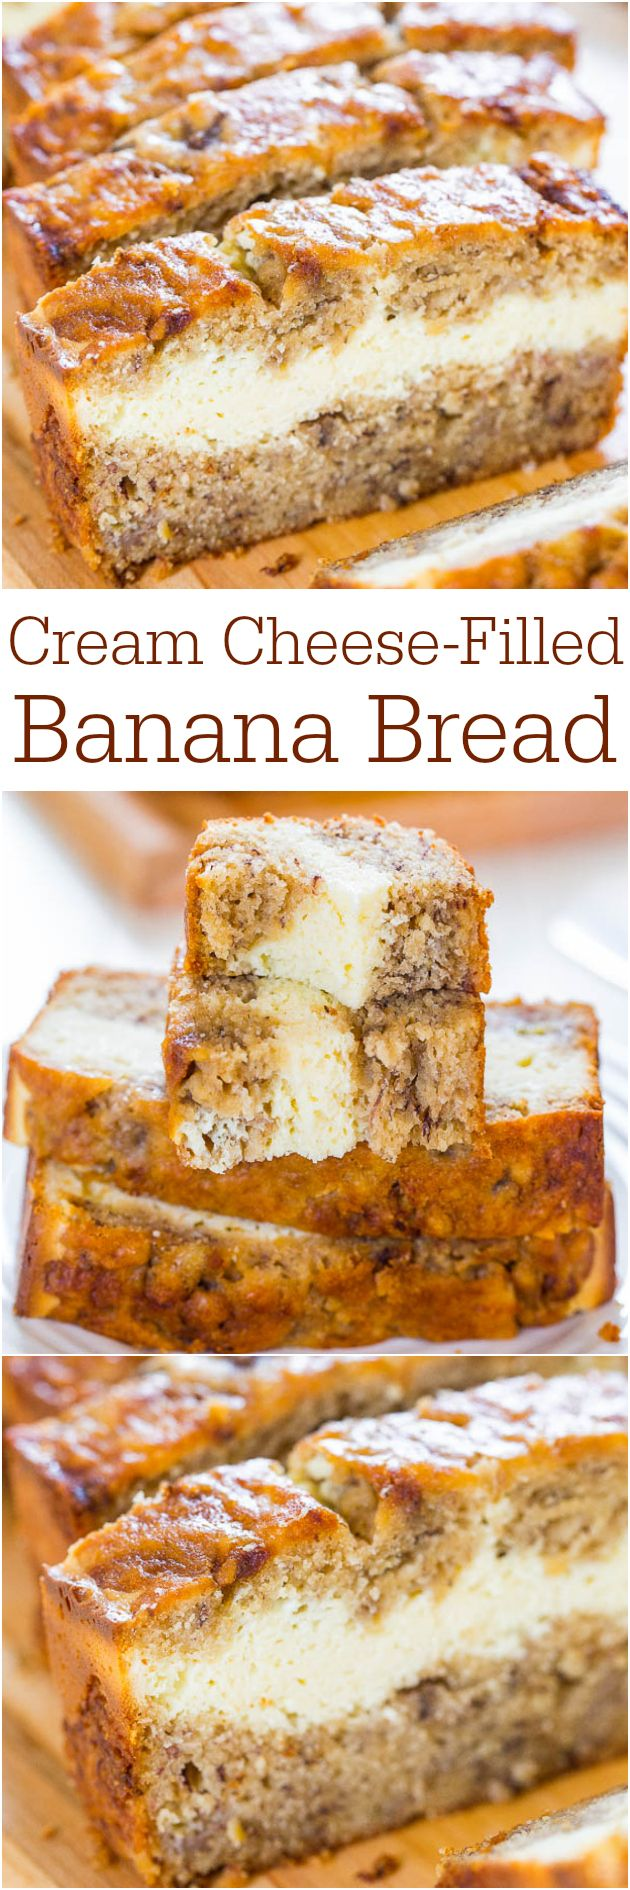 Oso Simple Squishy Banana : 1000+ ideas about Banana Bread on Pinterest Breads, Bananas and Muffins